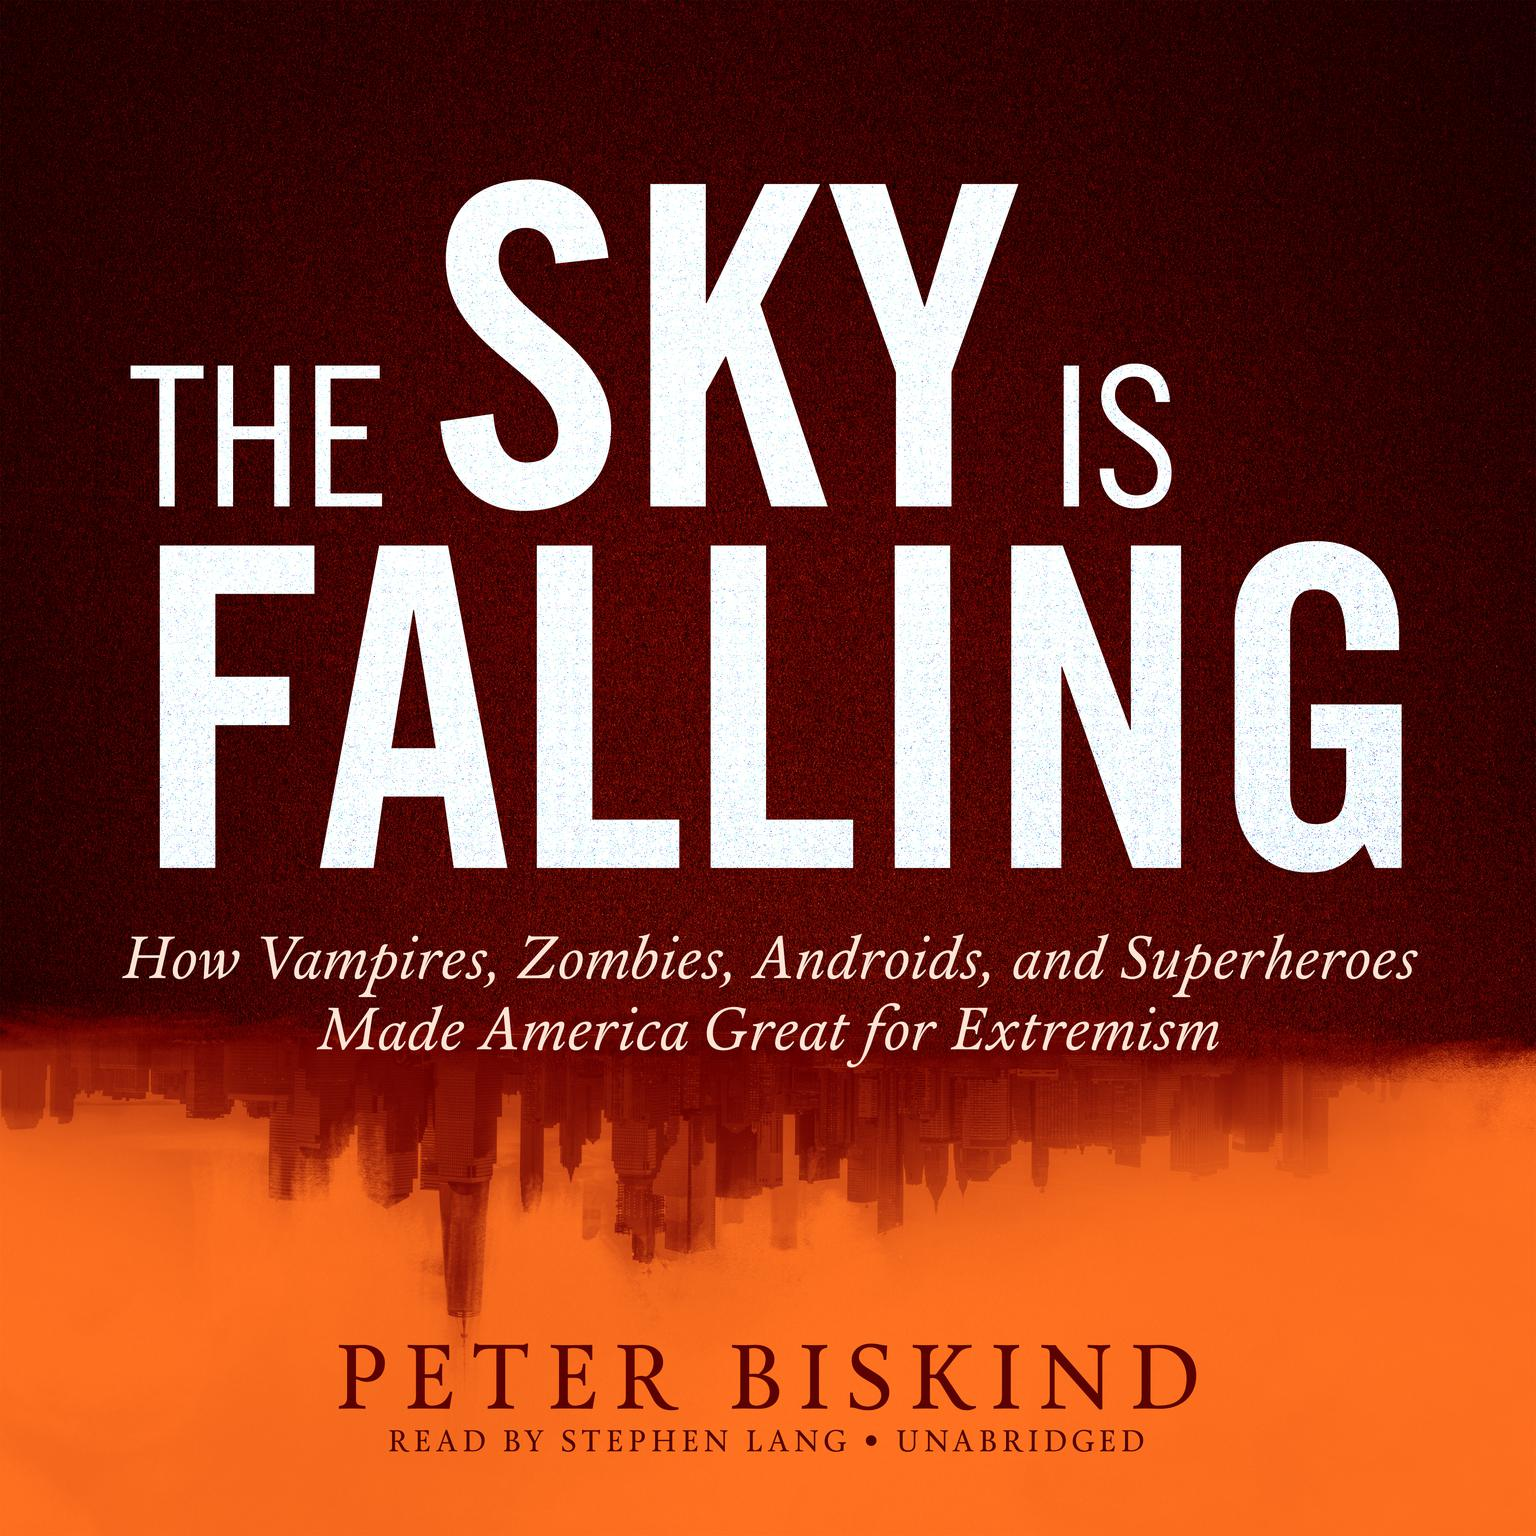 Printable The Sky Is Falling: How Vampires, Zombies, Androids, and Superheroes Made America Great for Extremism Audiobook Cover Art